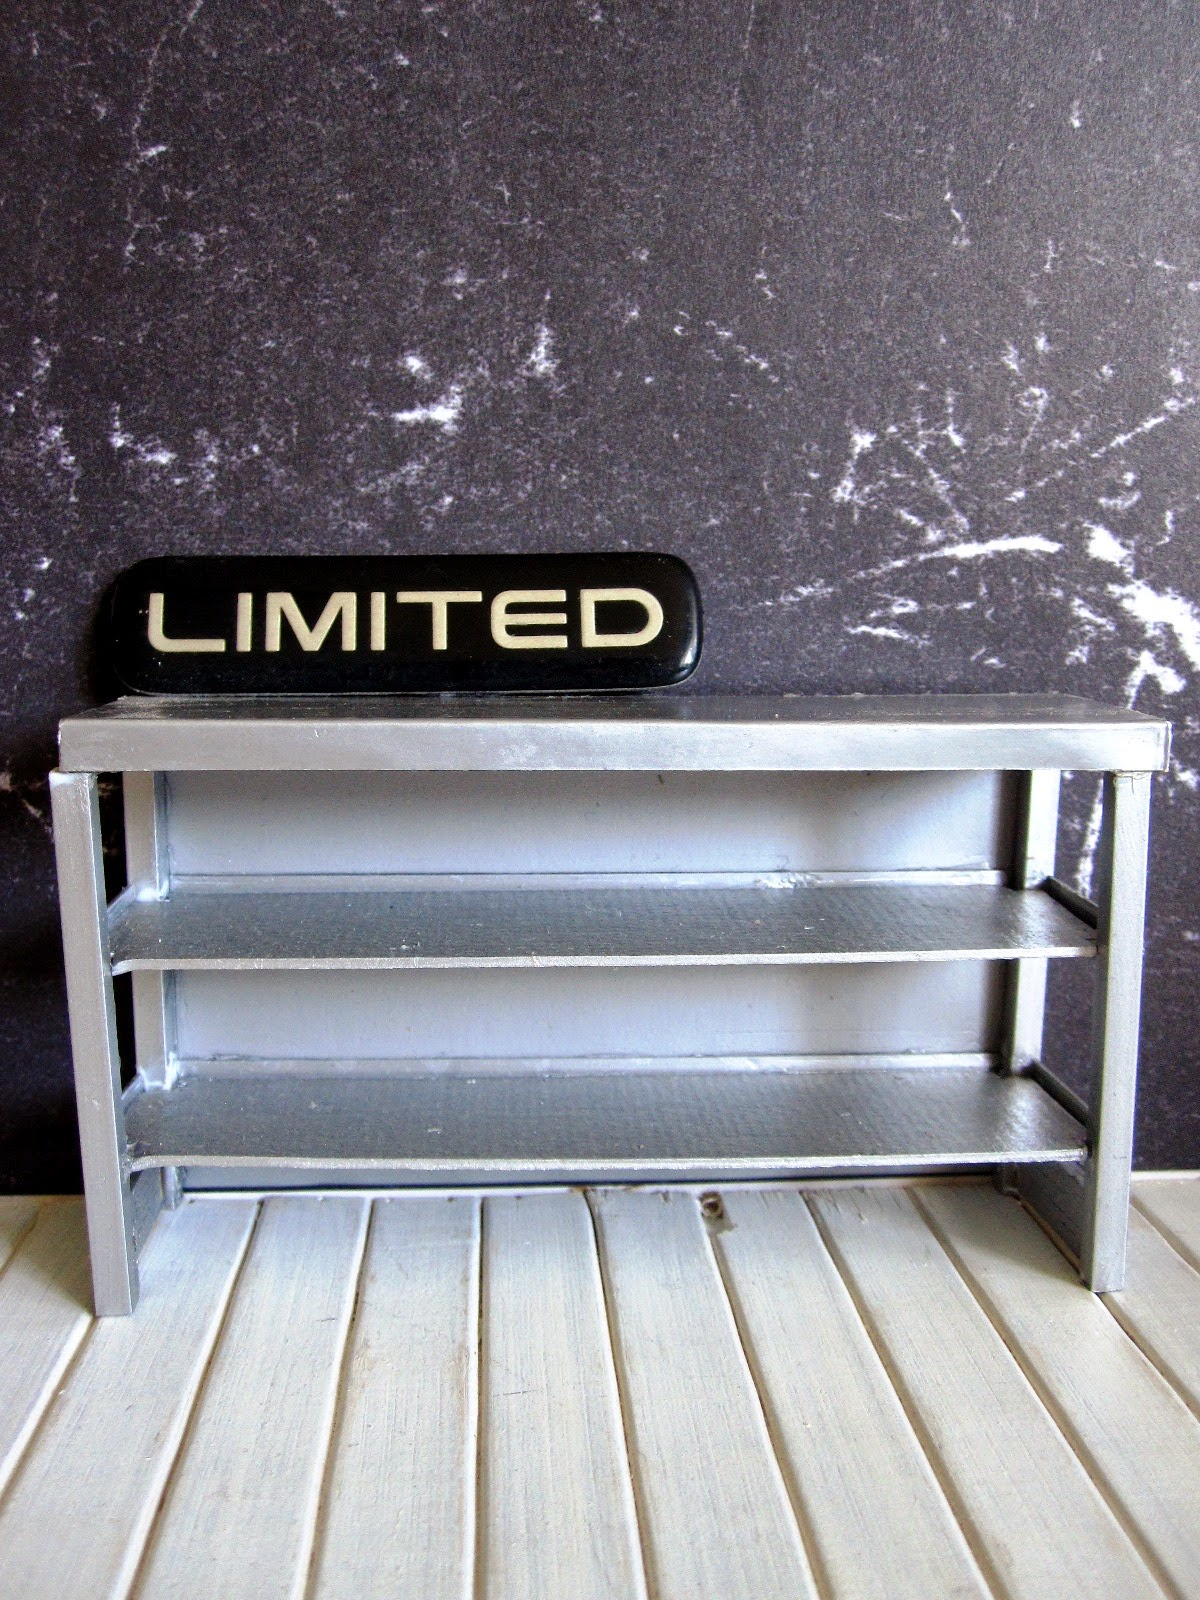 Modern doll's house miniature industrial grey storage bench in front of a wall covered with black marble-patterned paper. On the bench is a sign saying 'Limited'.